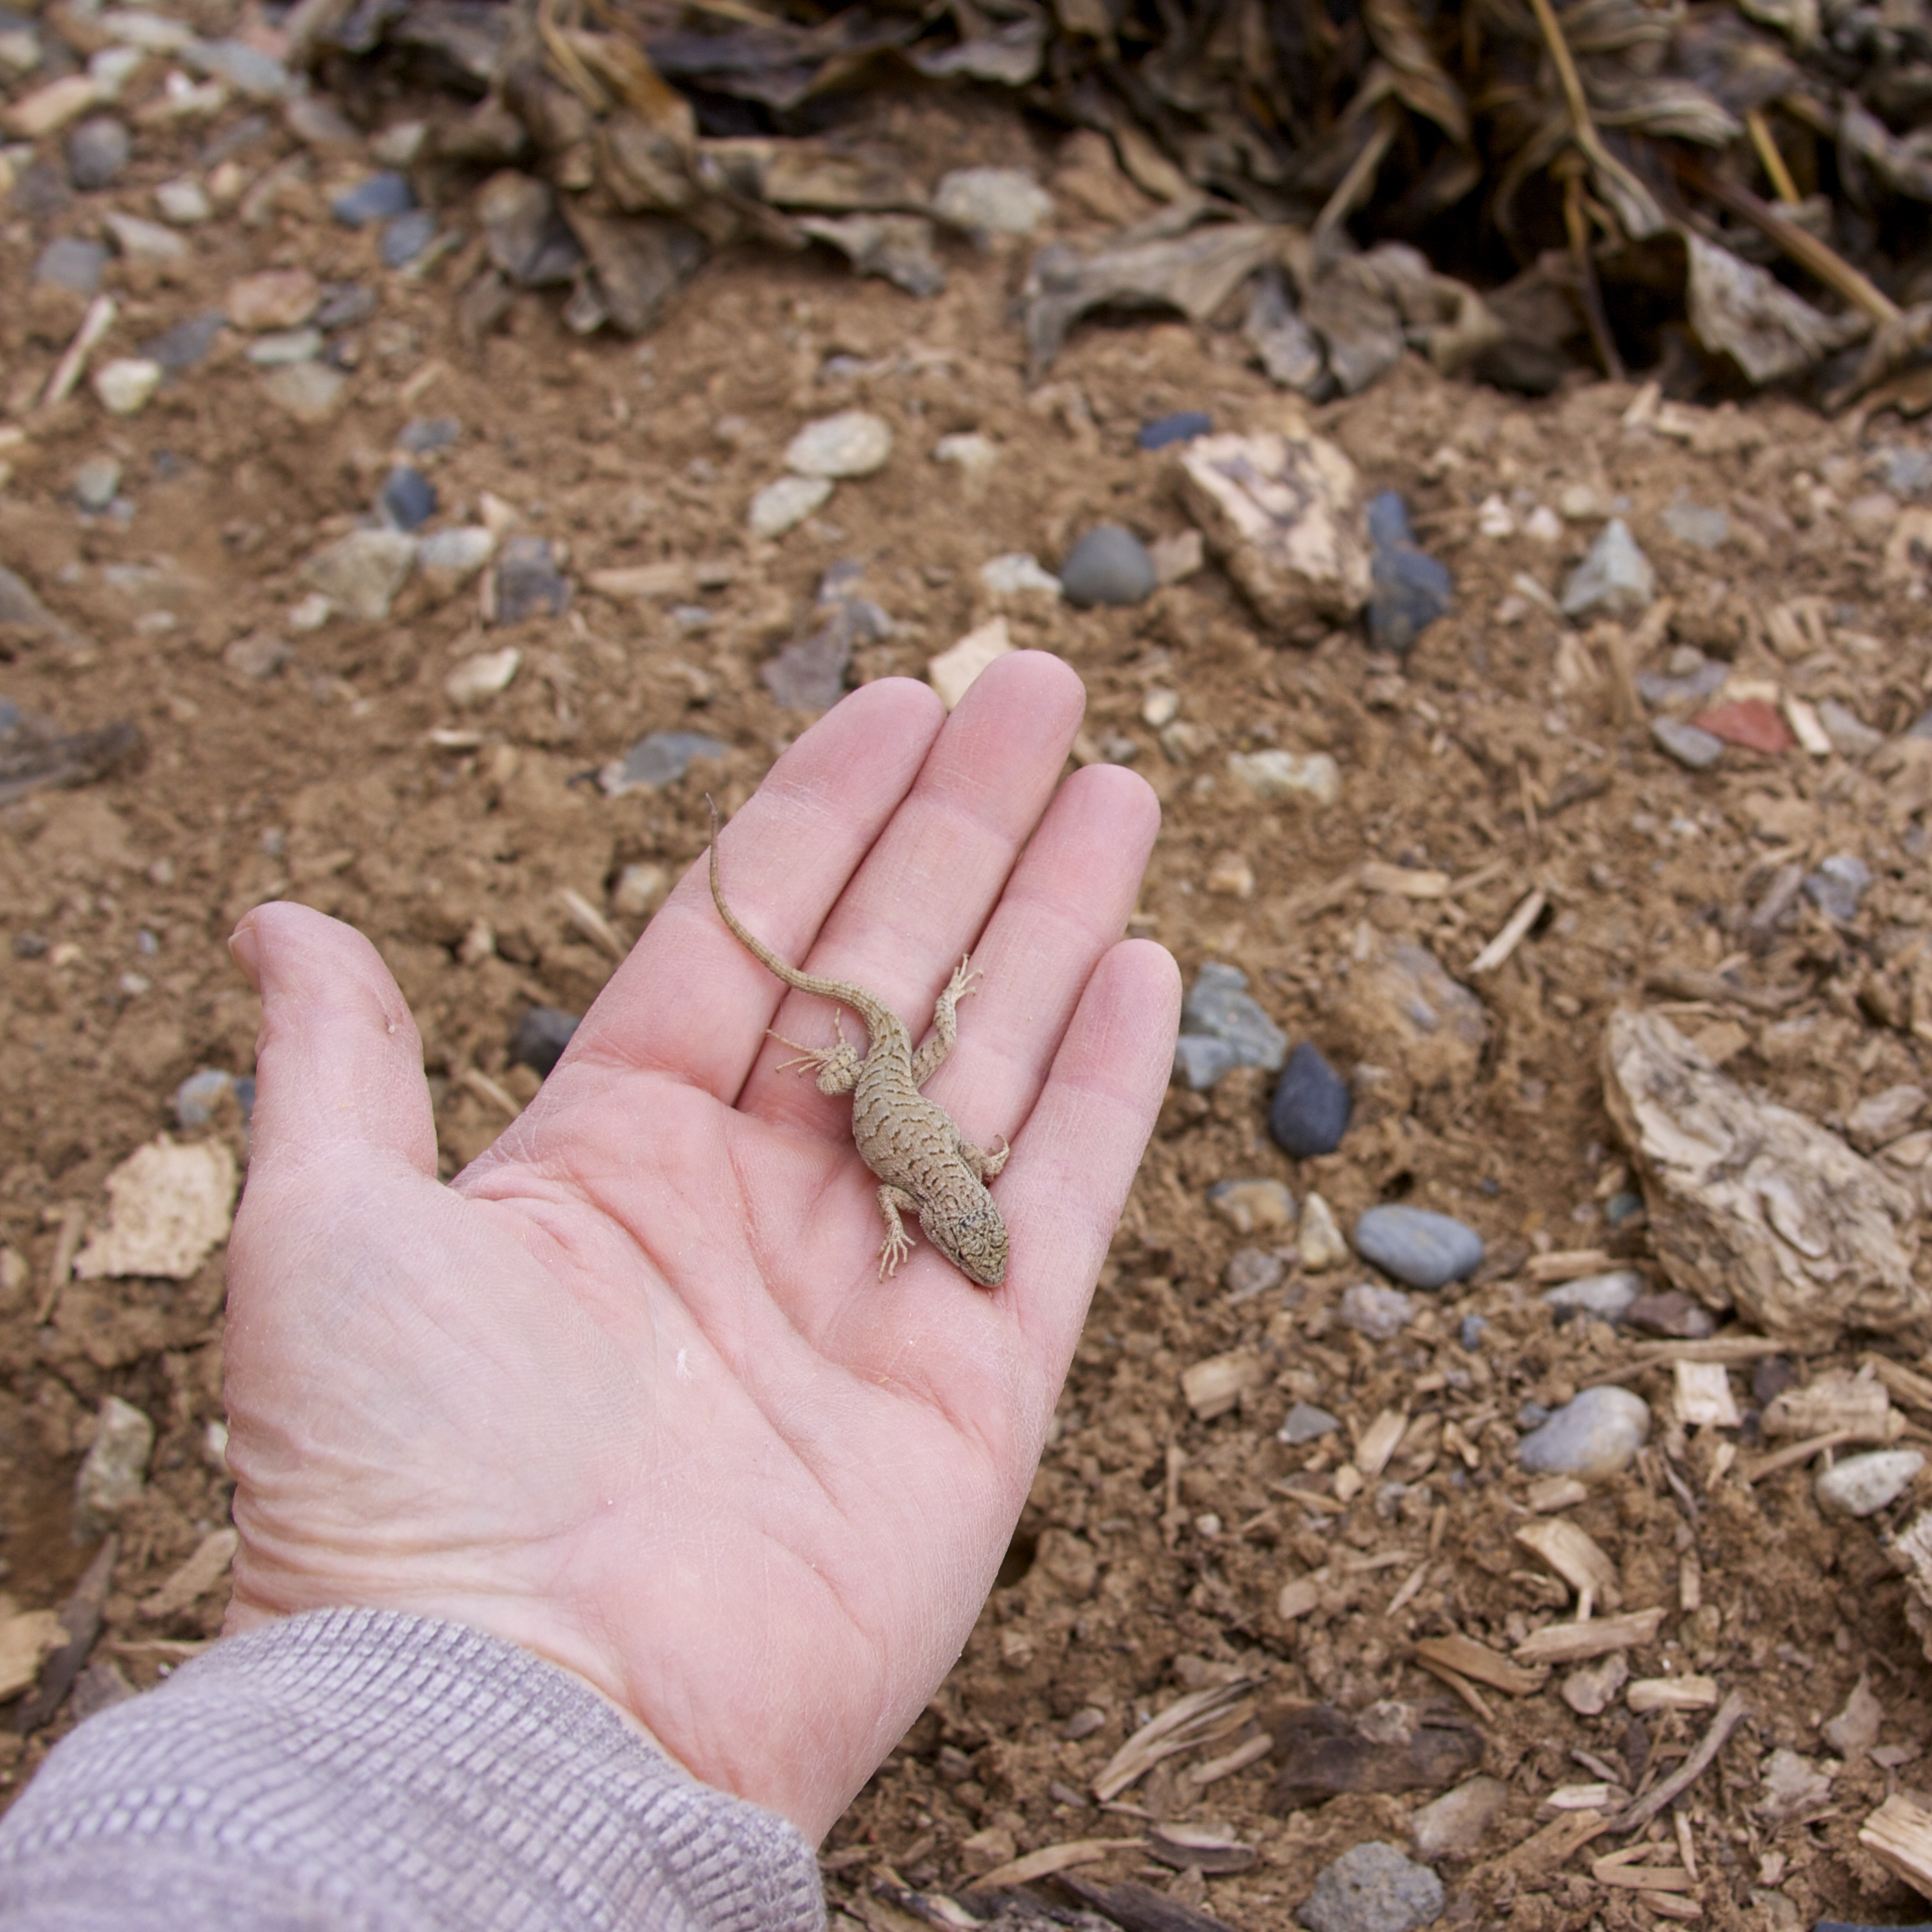 I rescued the first little lizard of the year from inside a friend's house.